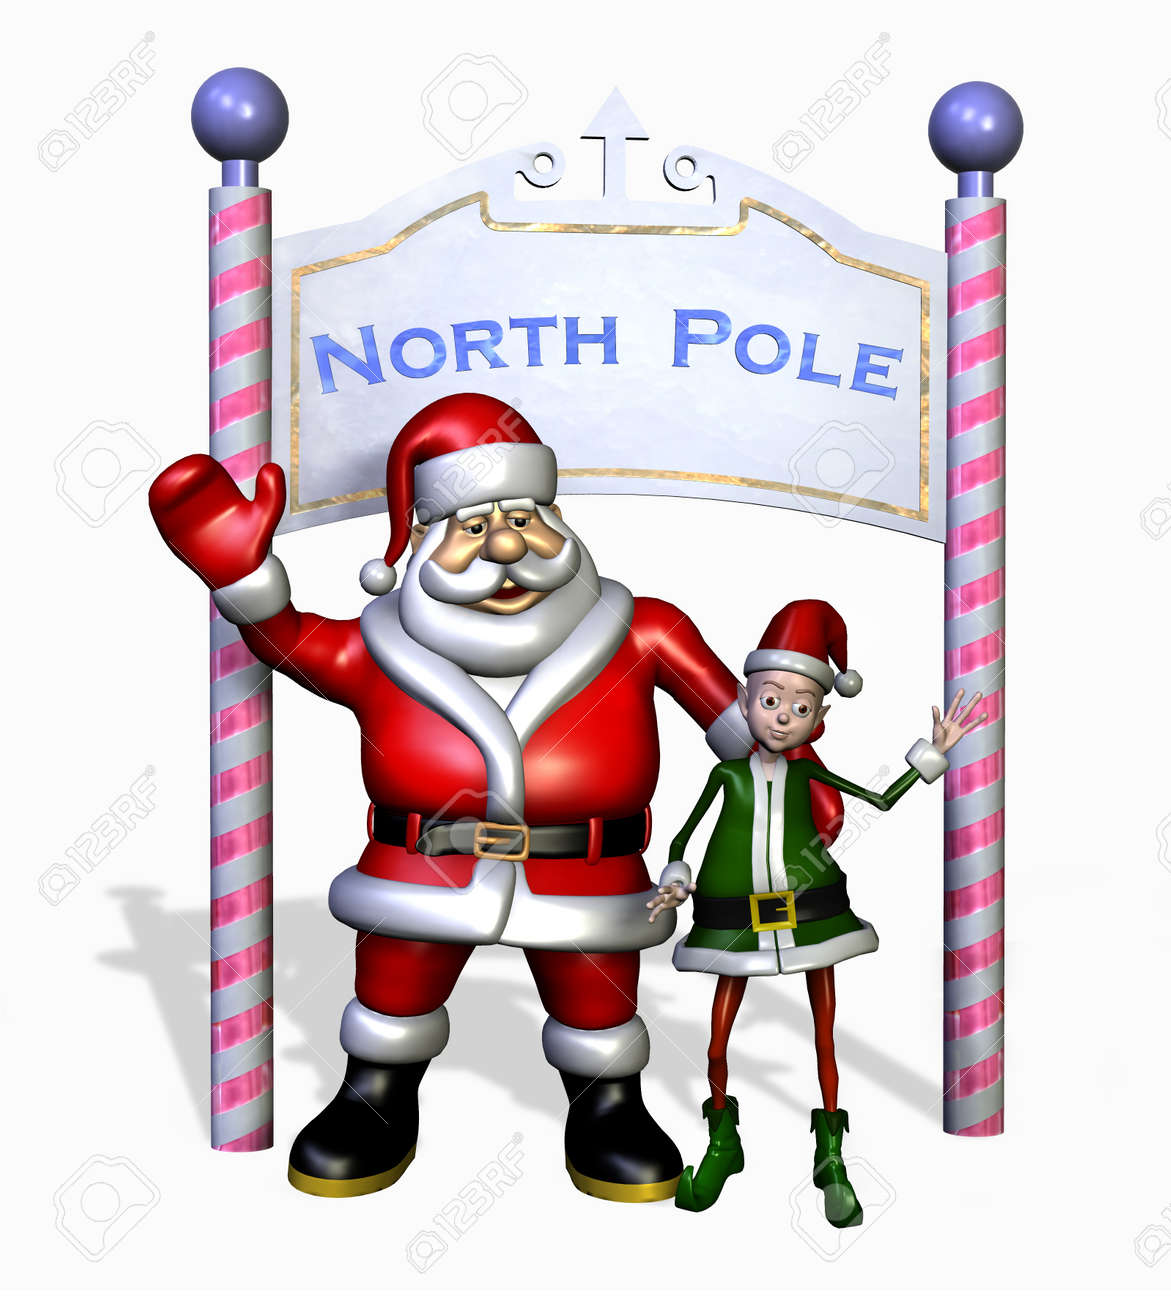 santa and his elf at the north pole 3d render stock photo 11711143 - Santa And The North Pole